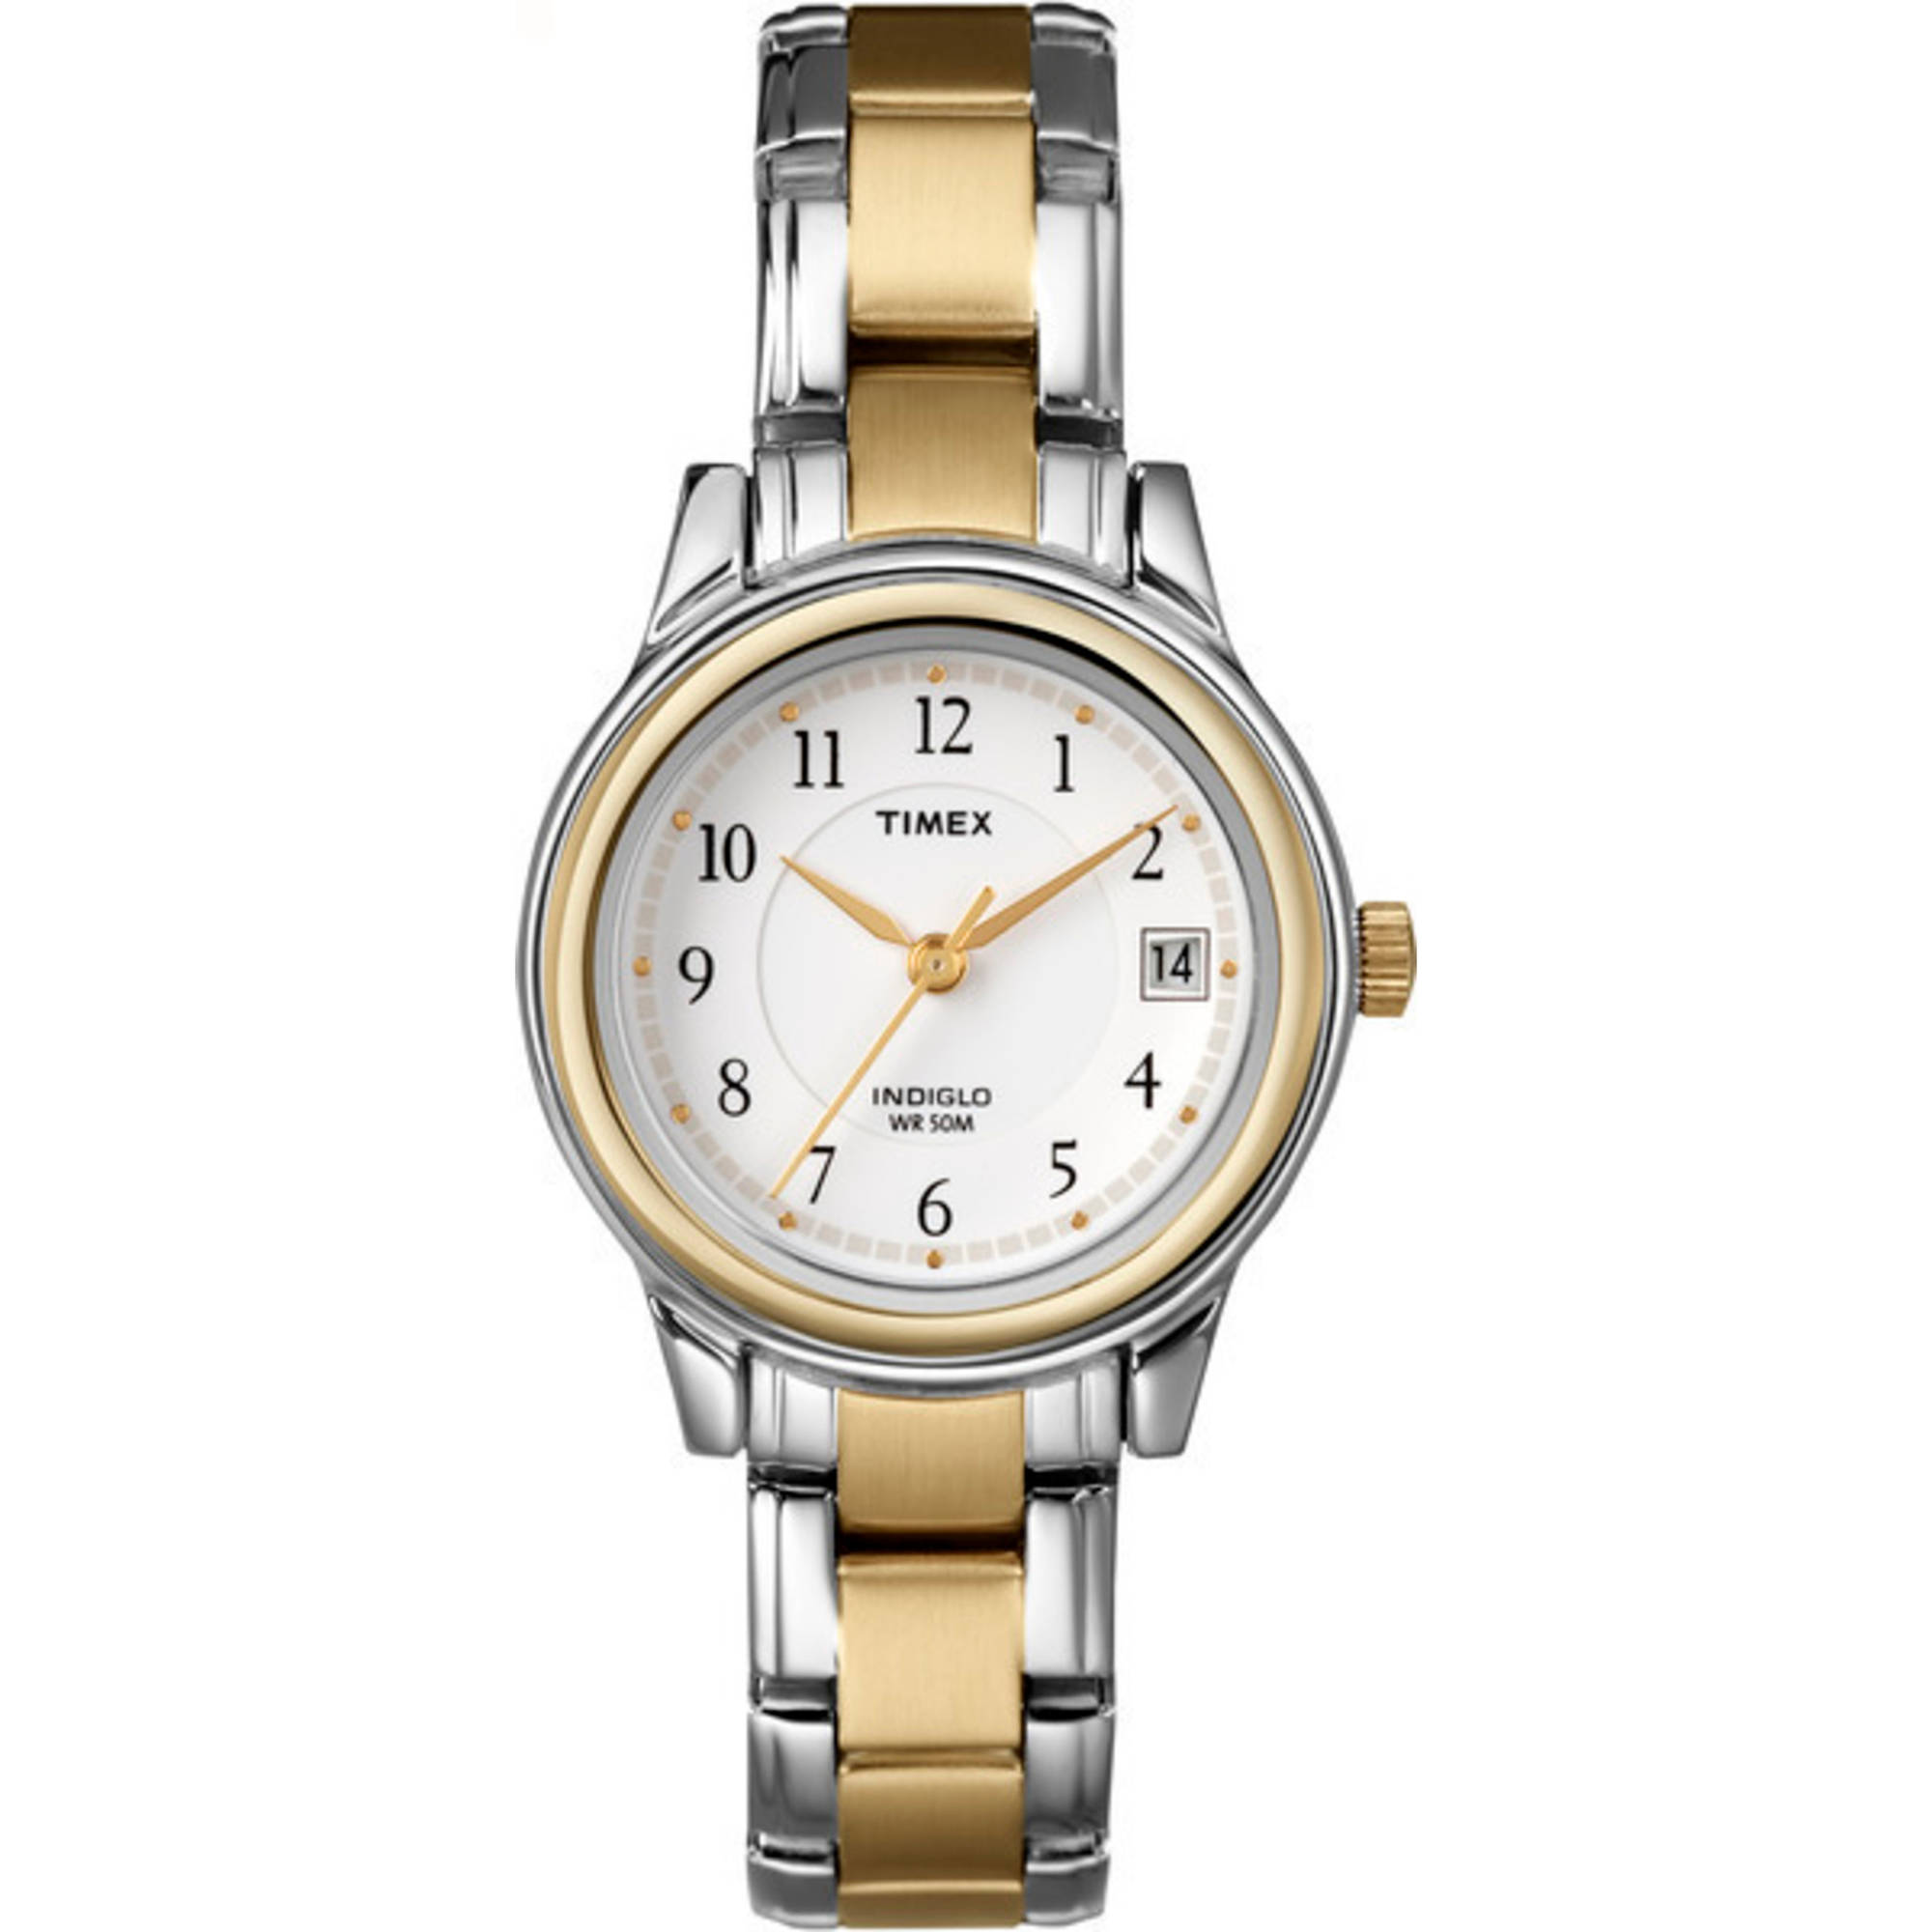 Timex Women's Porter Street Watch, Two-Tone Stainless Steel Bracelet